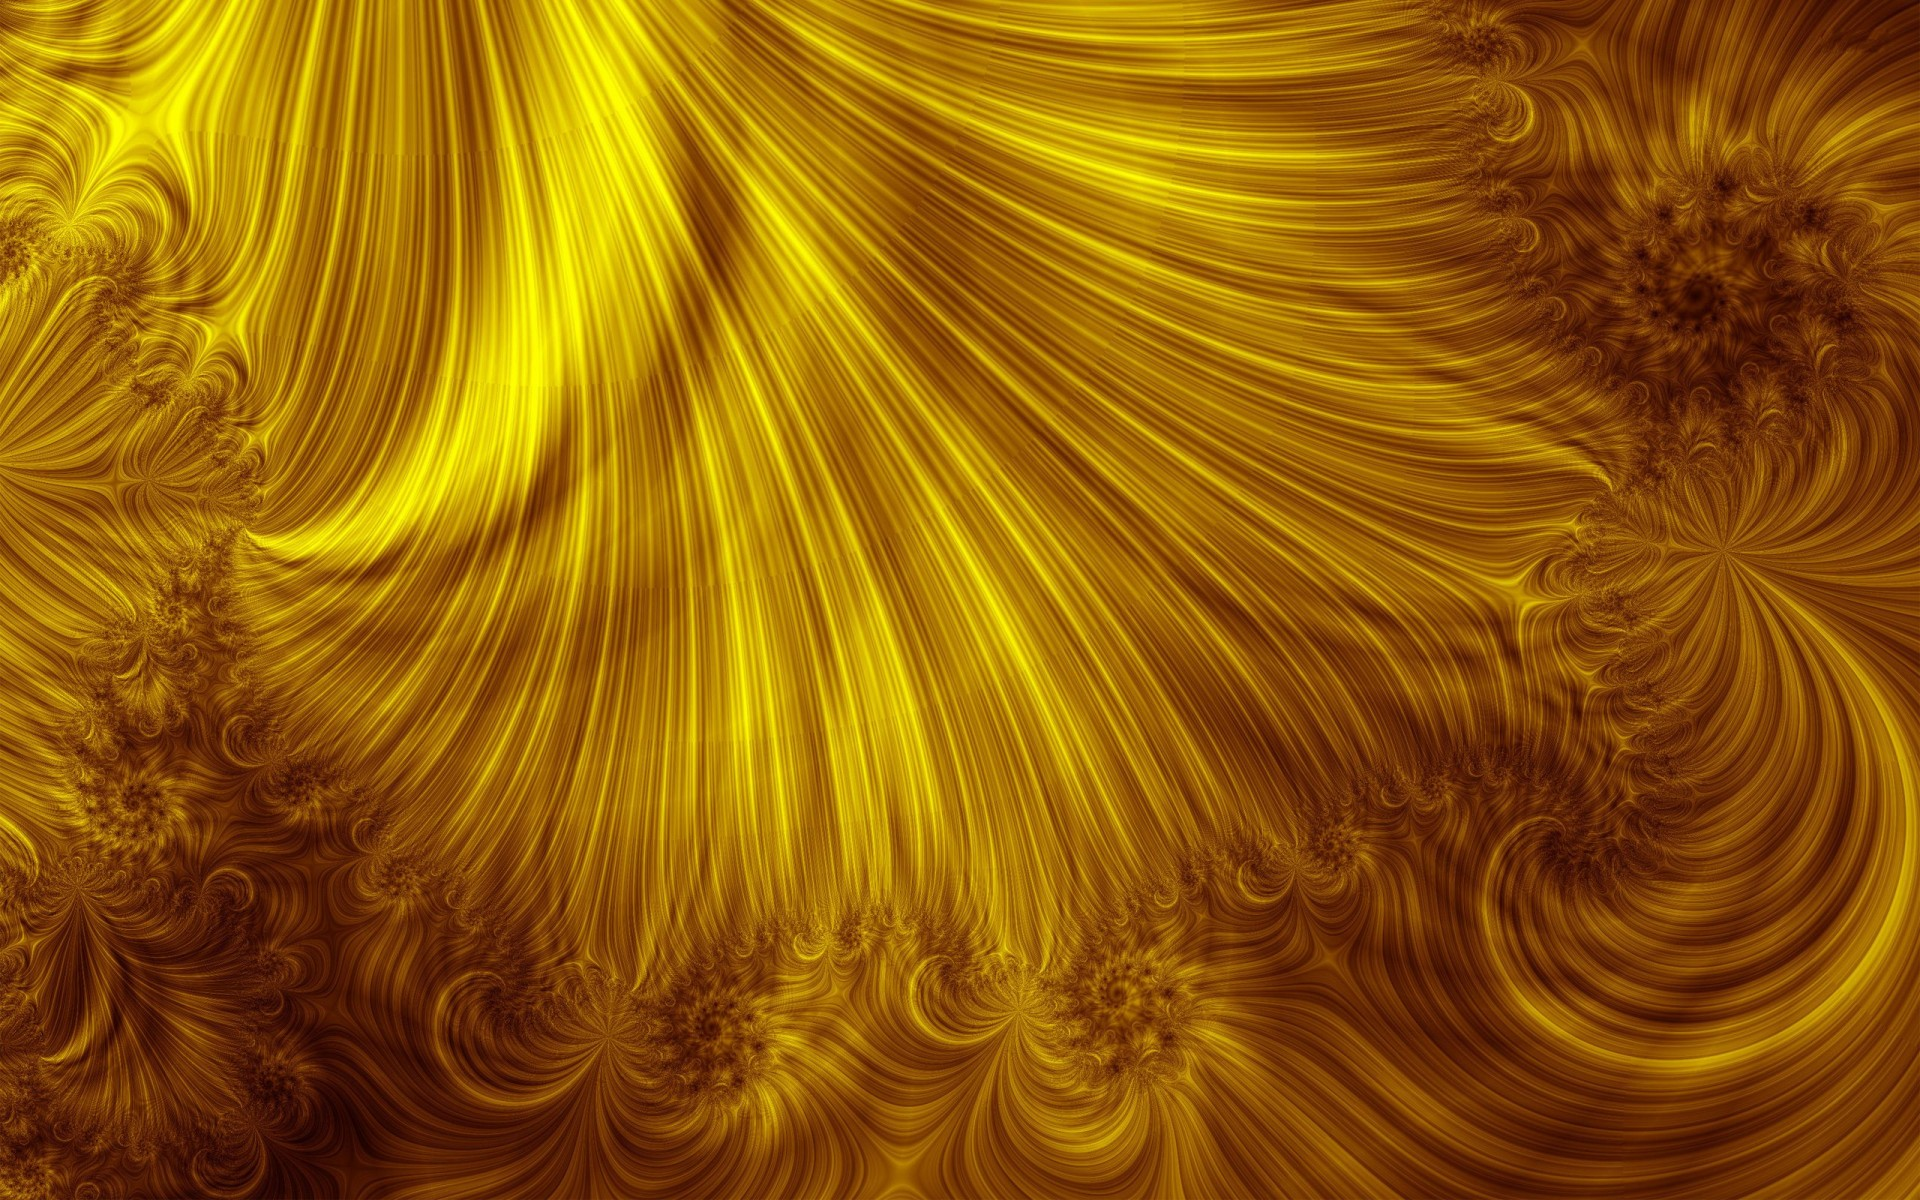 gold backgrounds 1920x1200